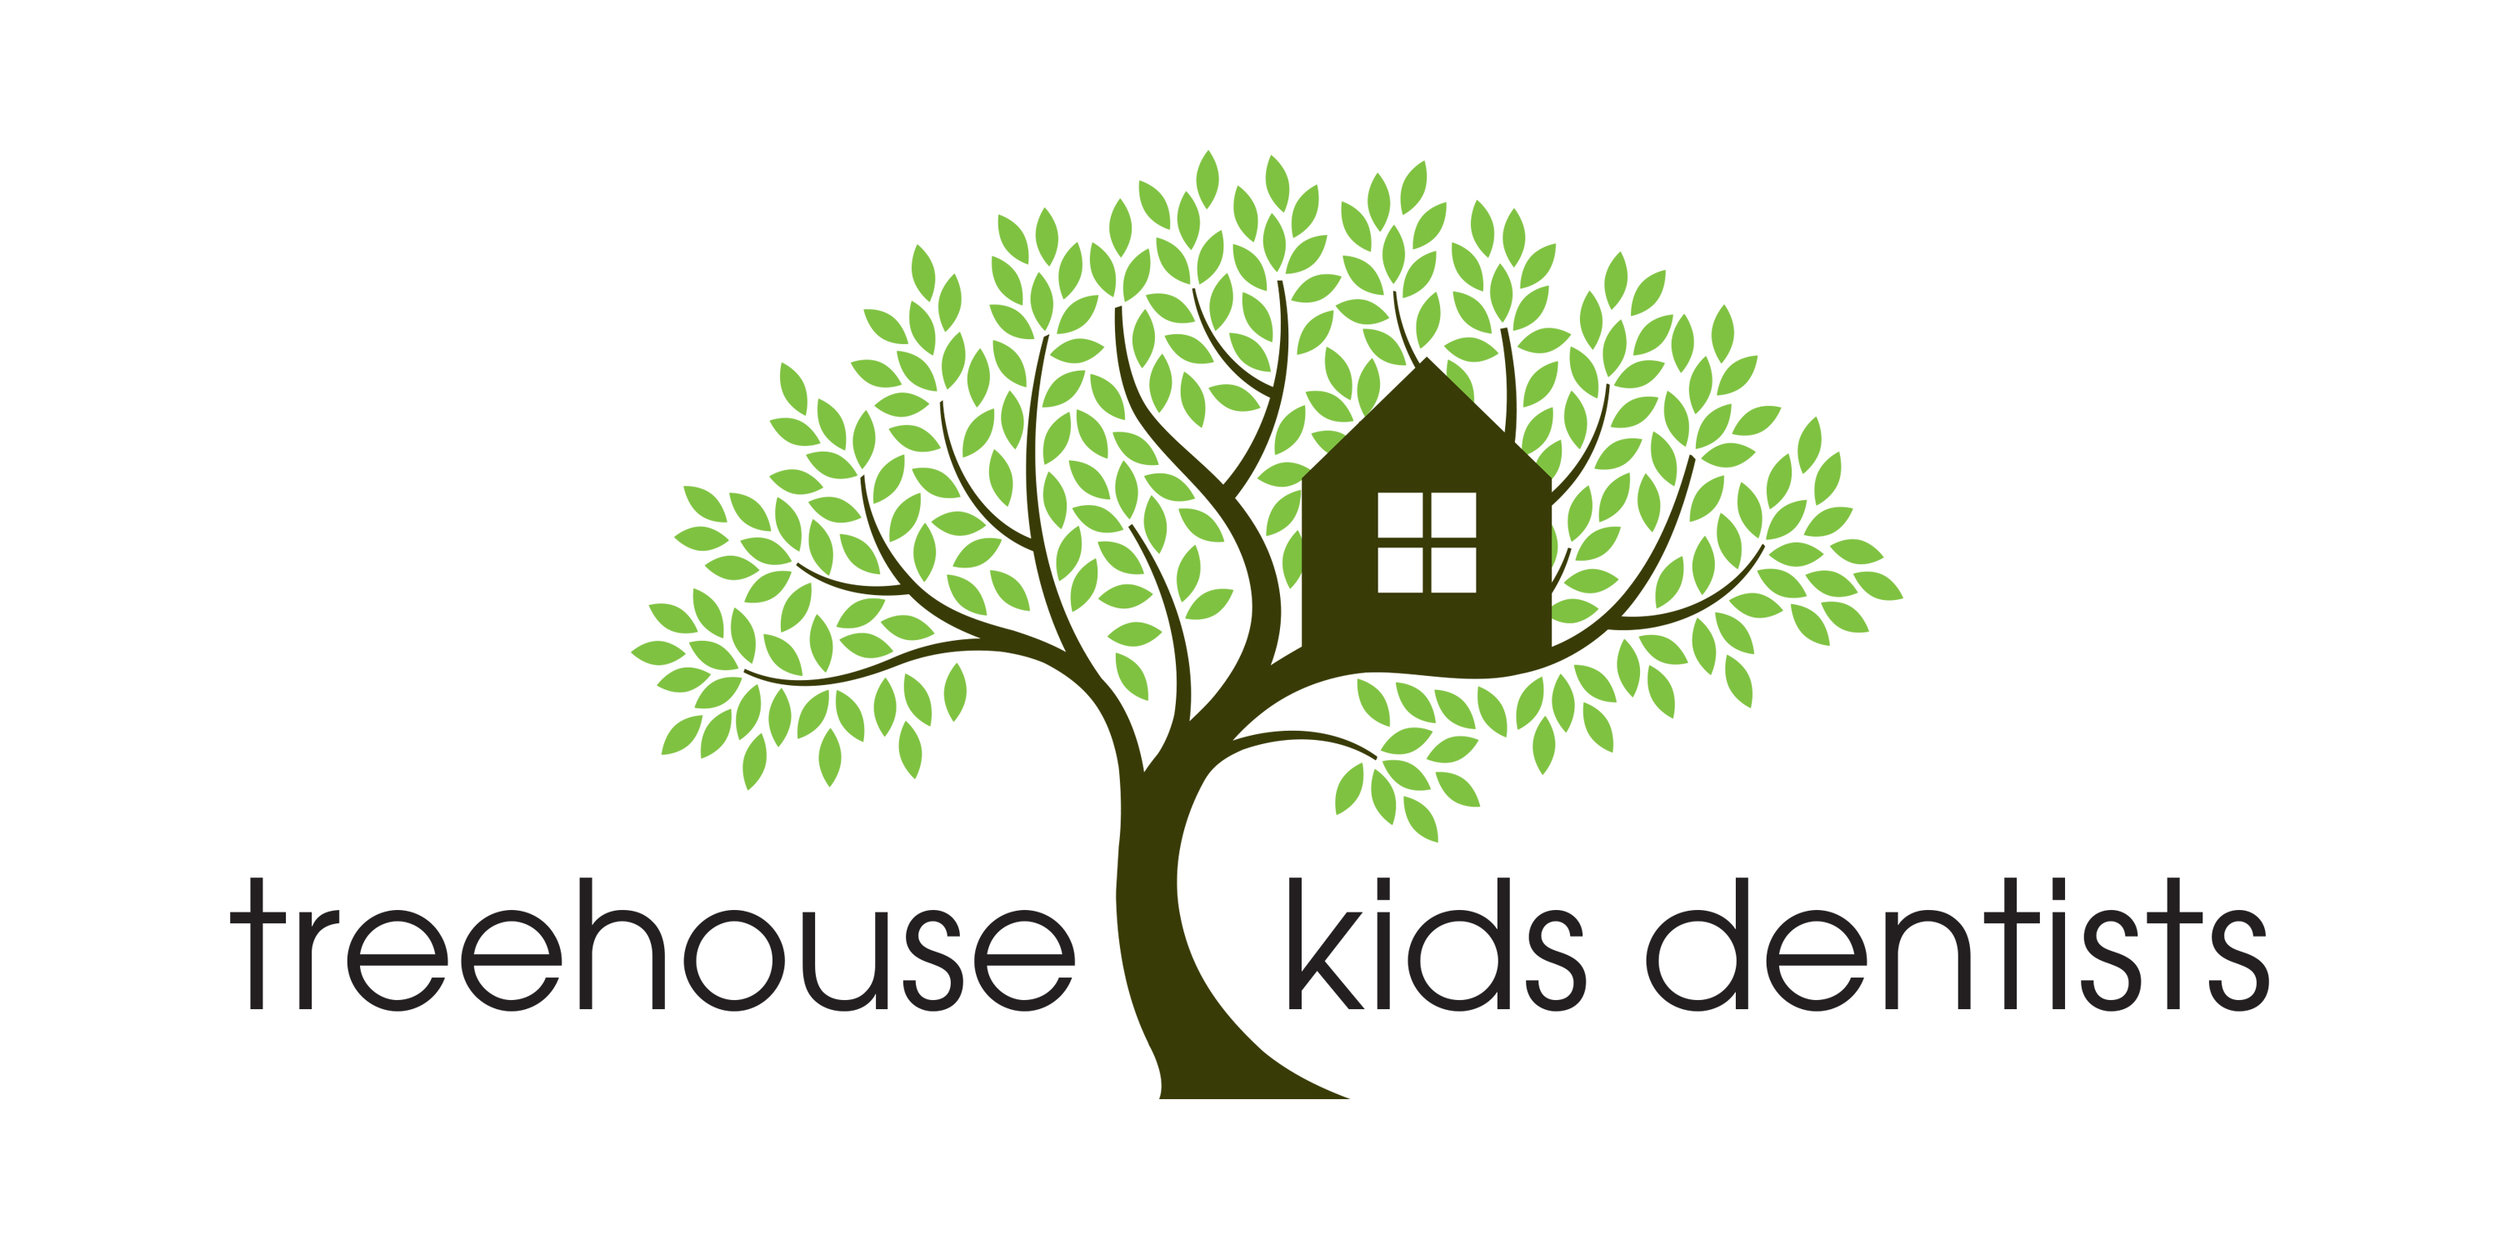 Web_Samples_Treehouse_Logos5.jpg